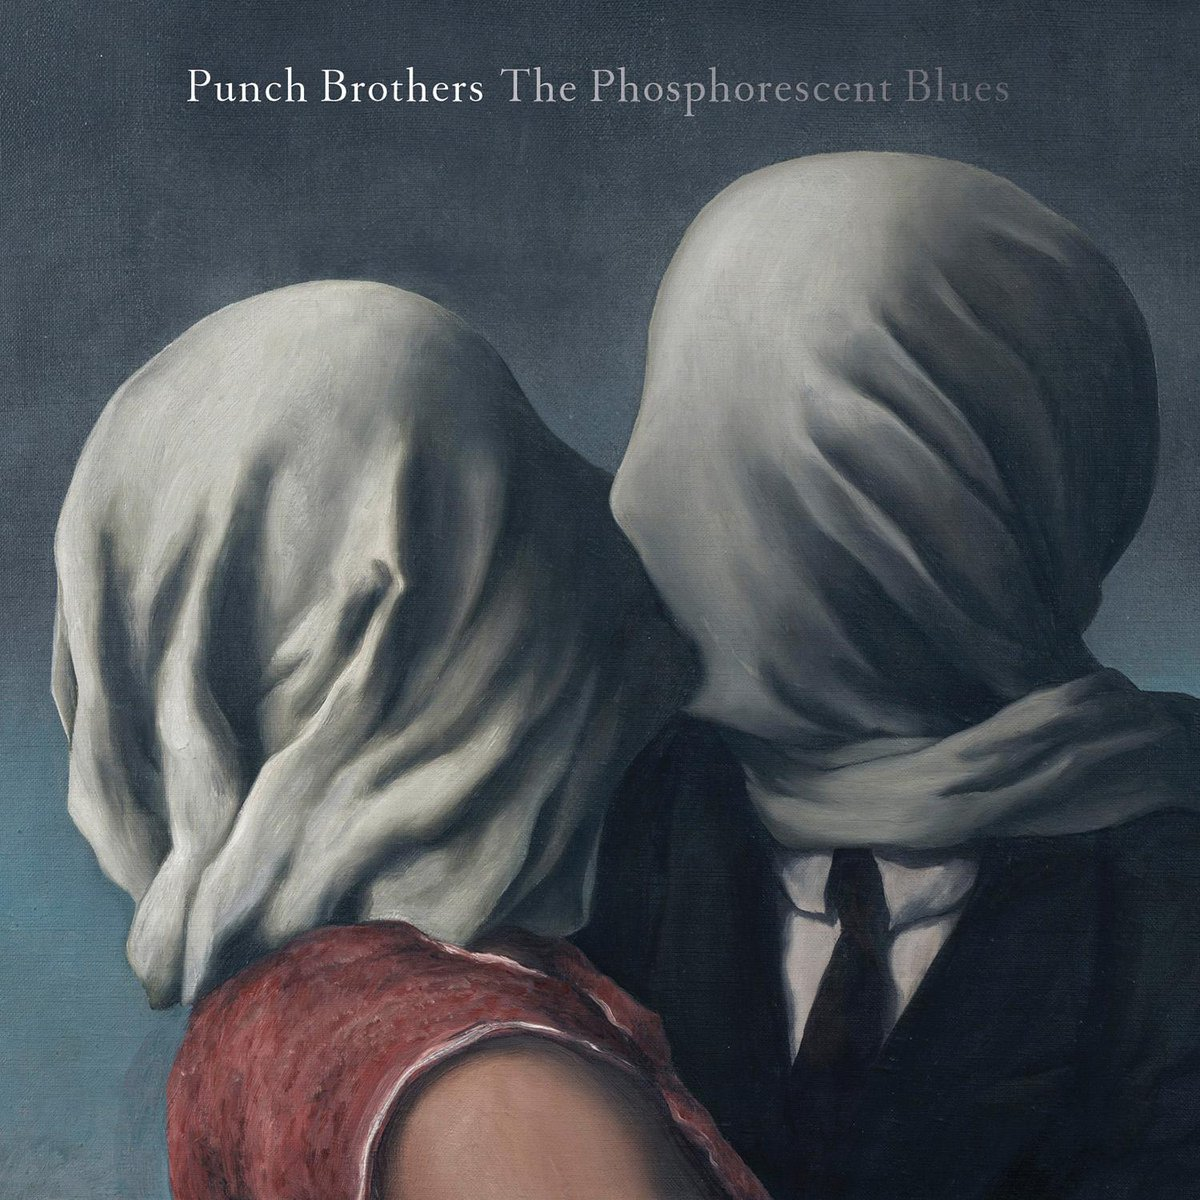 Our new album, The Phosphorescent Blues, is out now! You can pick it up on @iTunesMusic here: http://t.co/C8I6dWGdyx http://t.co/OQ8Wnab8zJ